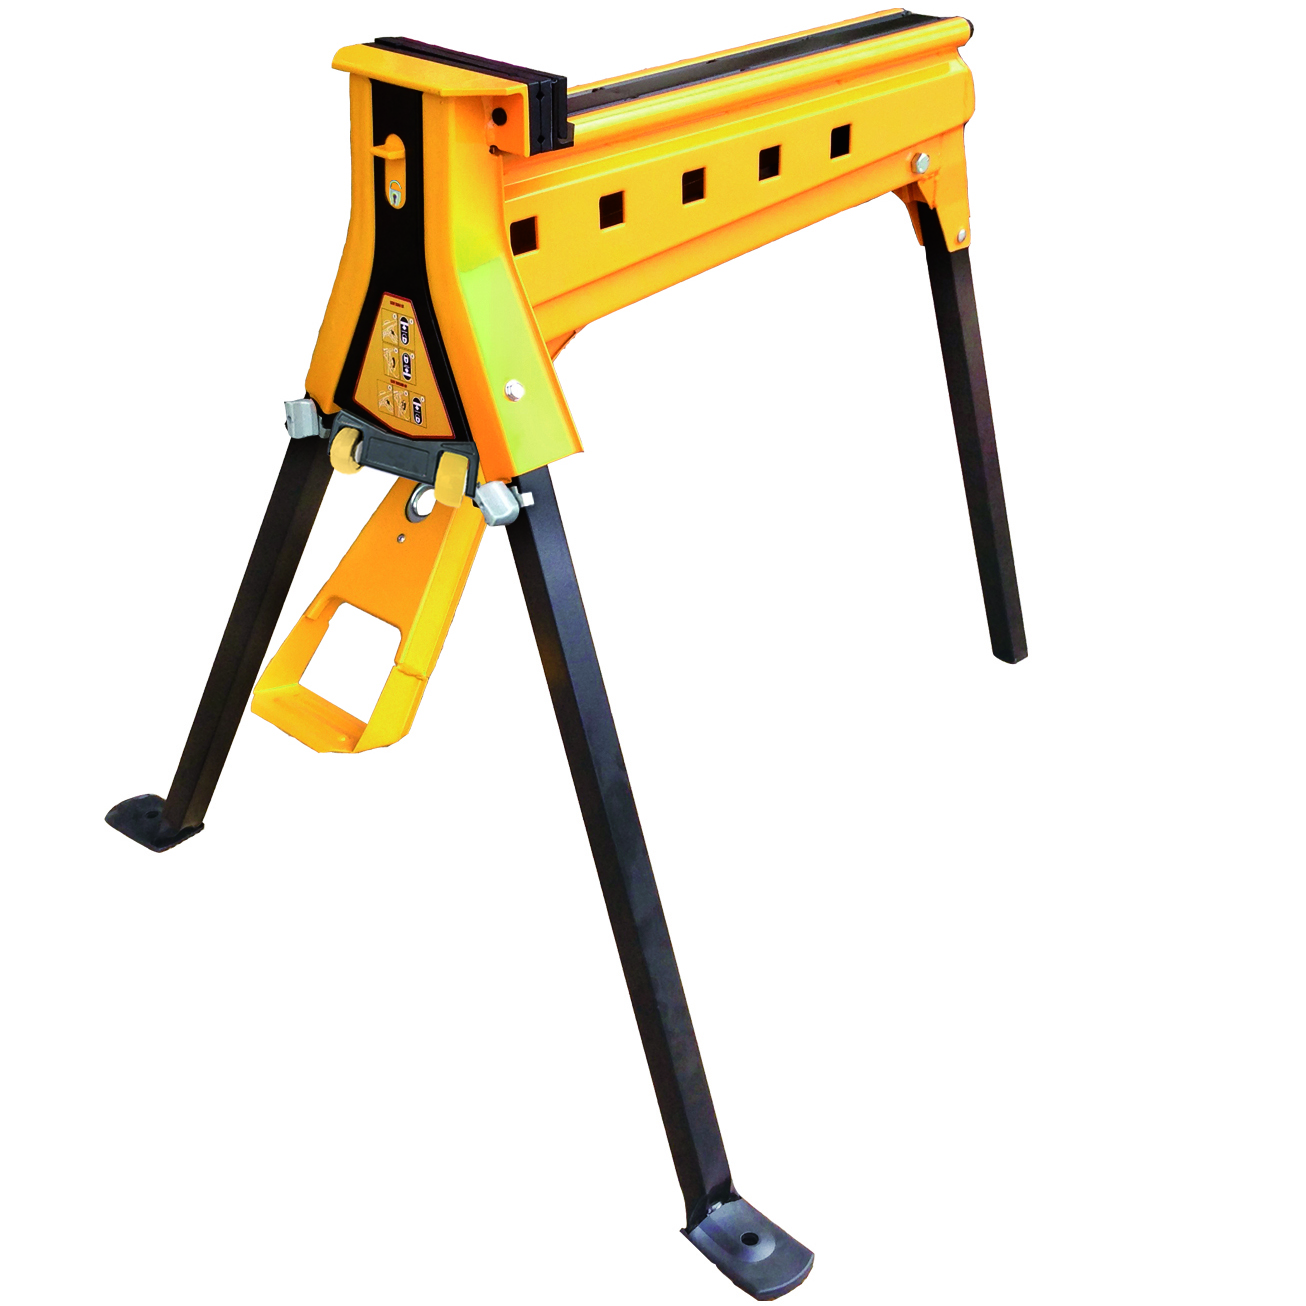 Fabulous Jaw Horse For Woodworking Bench View Jaw Horse Huibang Product Details From Laizhou Huibang Machinery Trading Company Ltd On Alibaba Com Creativecarmelina Interior Chair Design Creativecarmelinacom